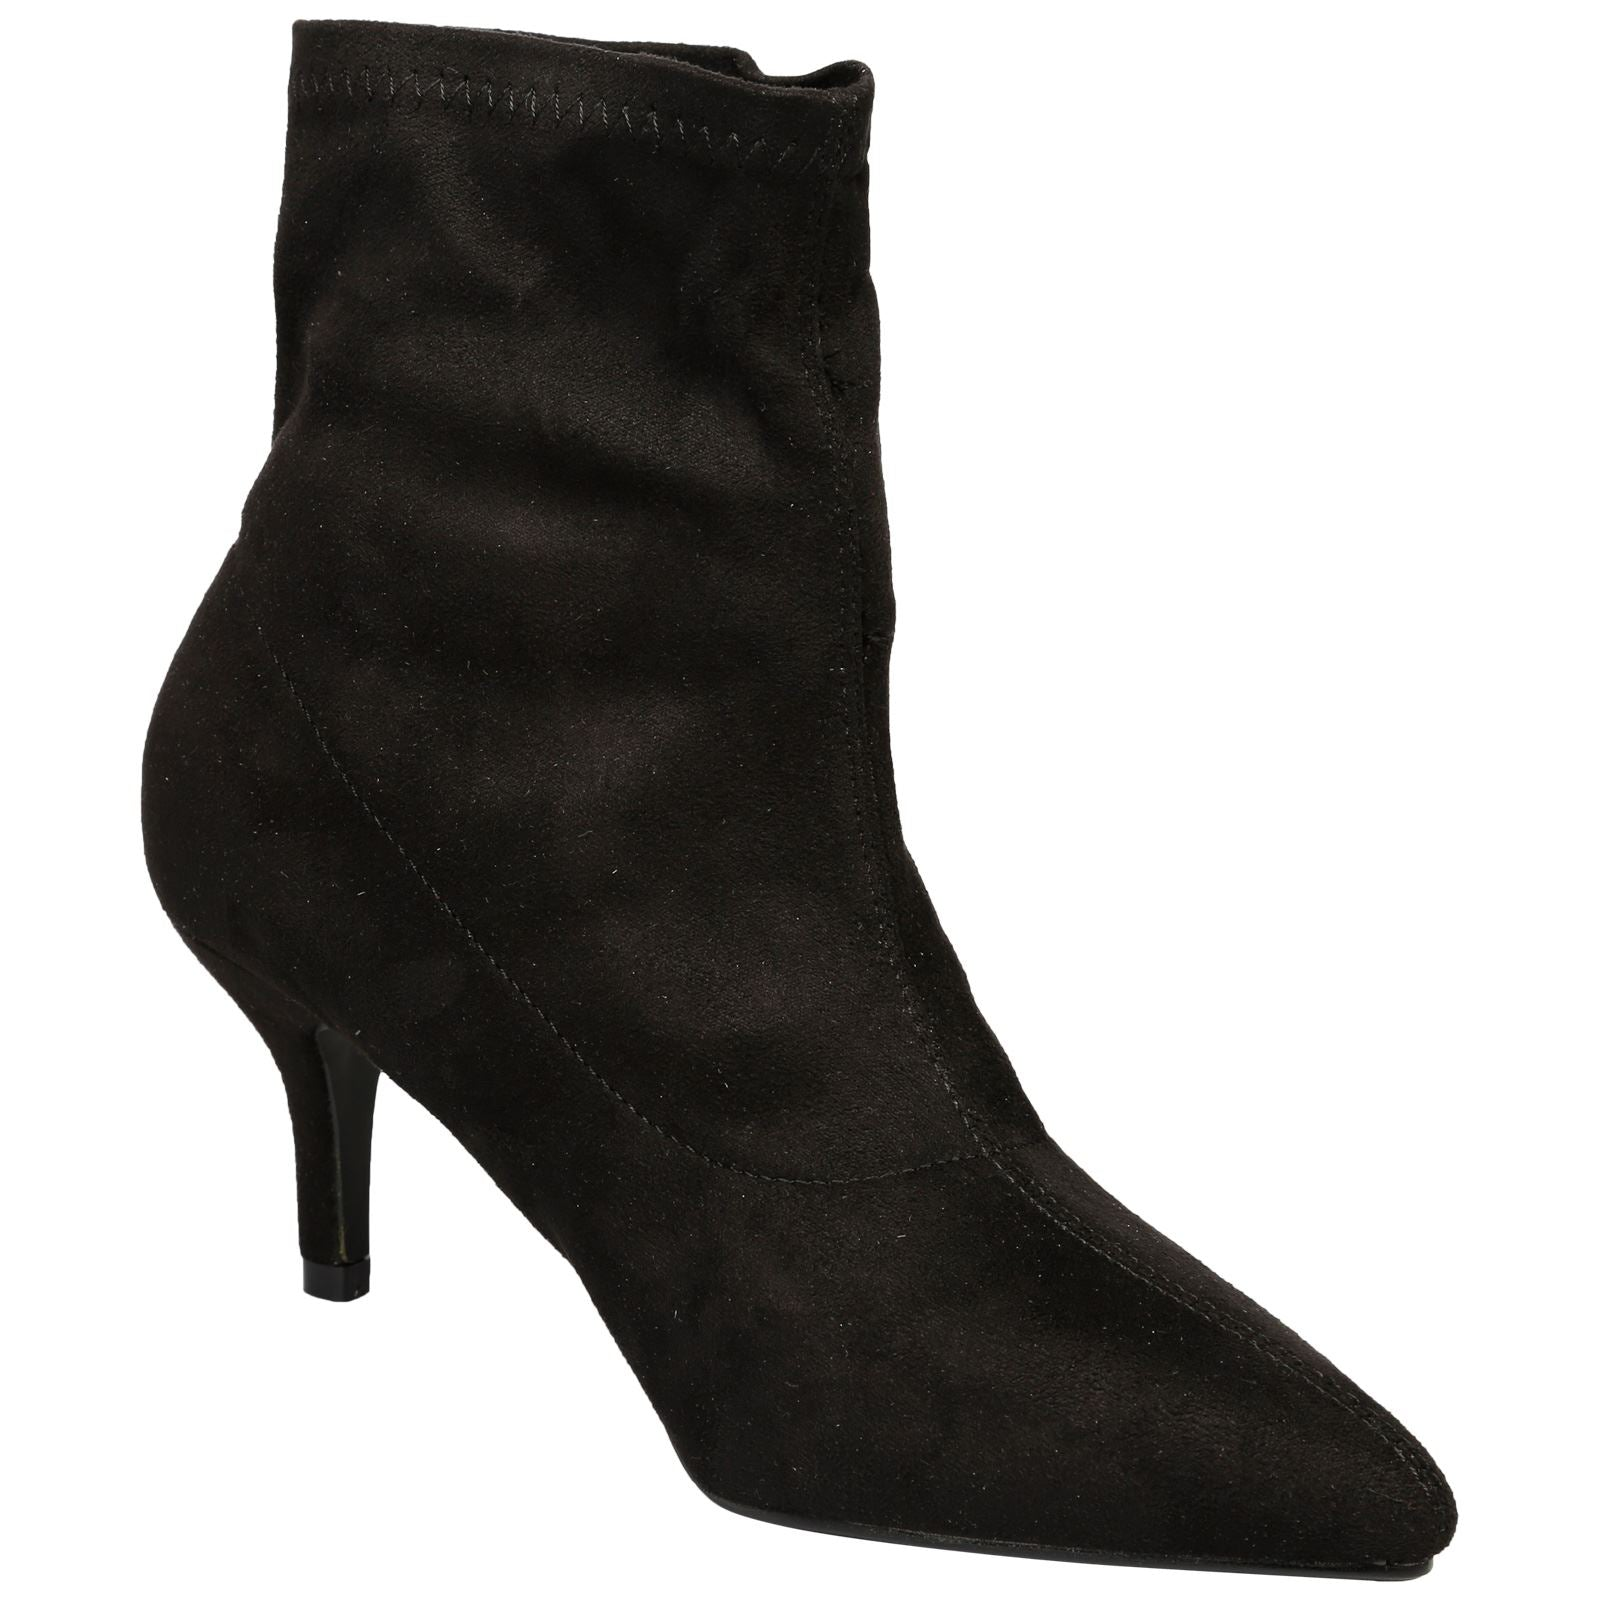 Everleigh Heeled Ankle Boots in Black Faux Suede - Feet First Fashion